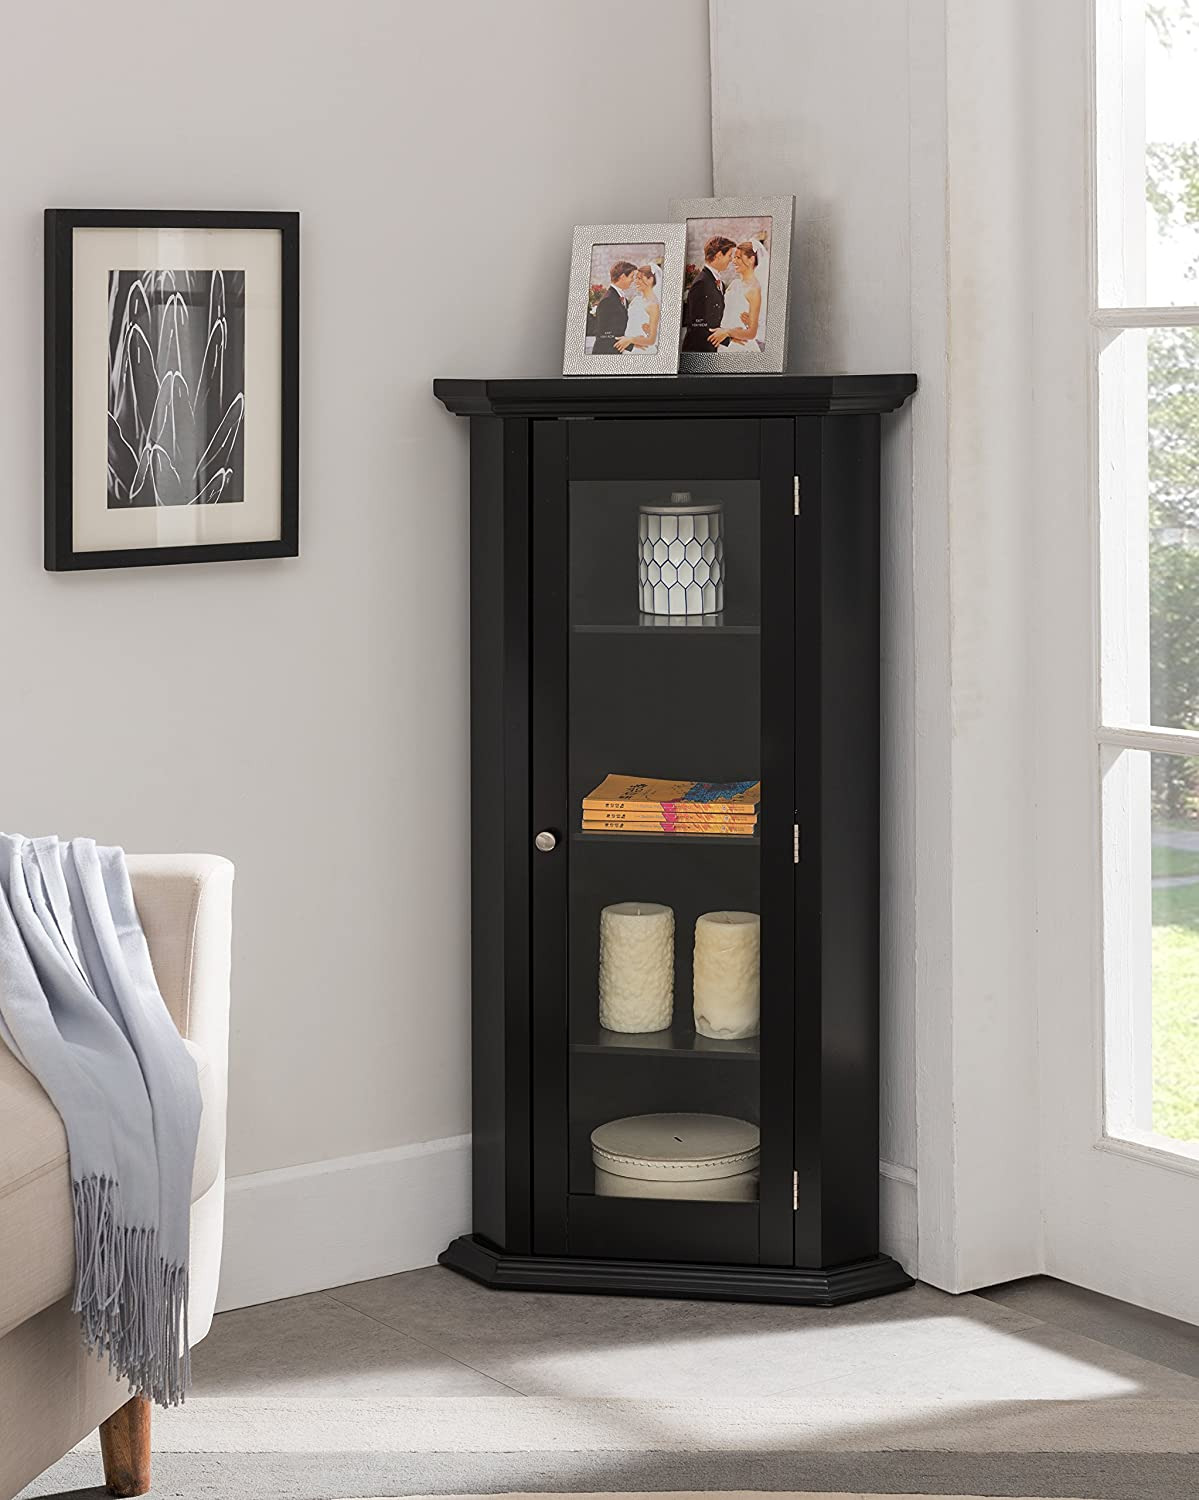 Wall Cabinets with Glass Doors Inspirational Kings Brand Furniture Corner Curio Storage Cabinet with Glass Door Black Finish